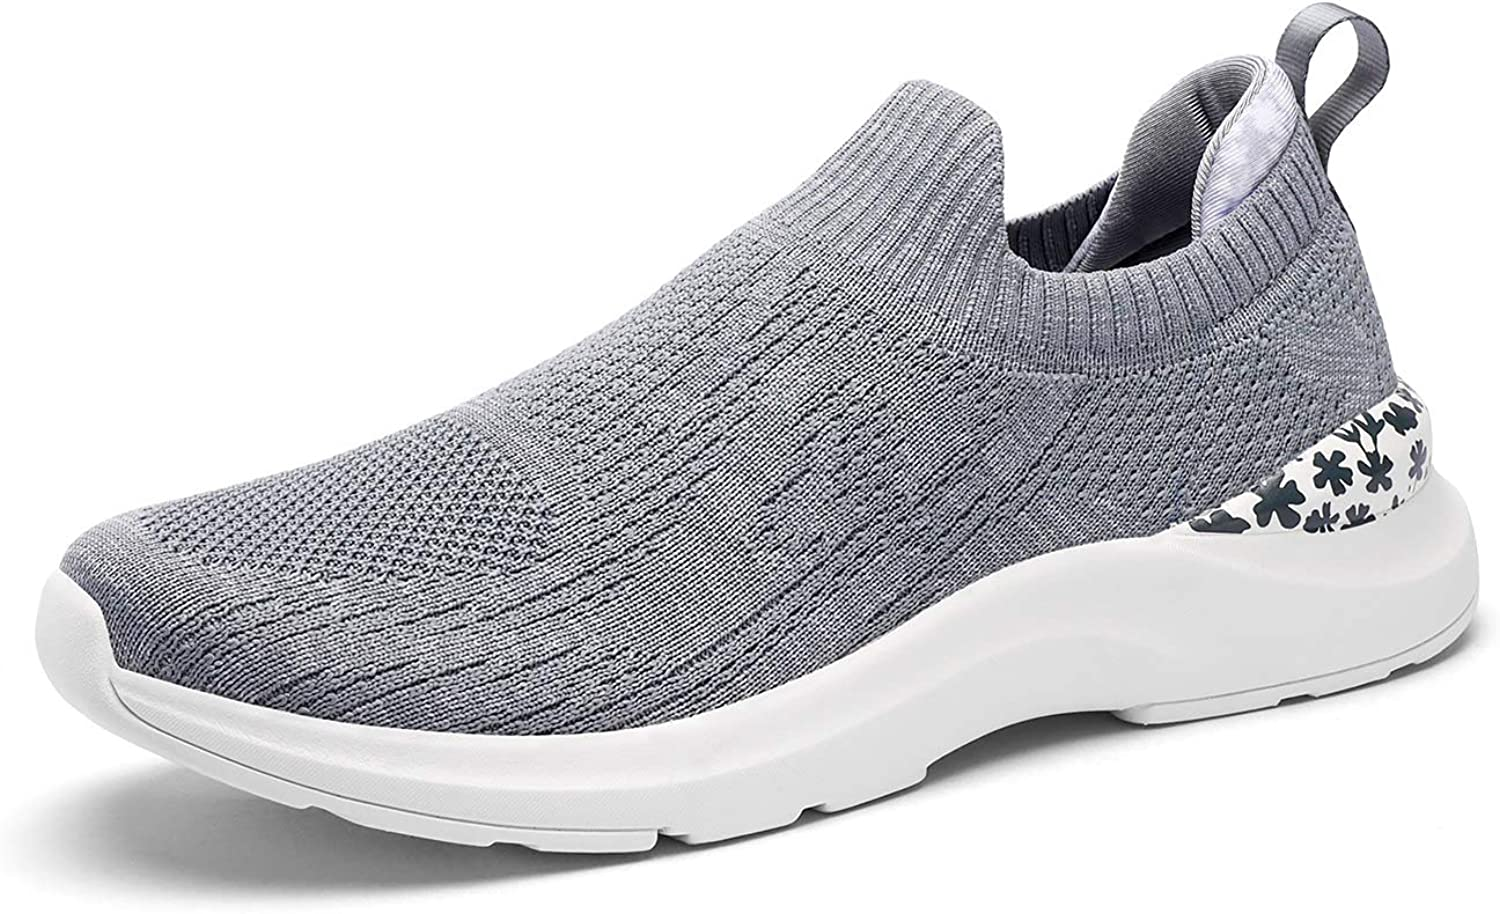 ELEMENT/&STITCH Women Road Running Shoes Air Cushion Shoes for Womens Mesh Sneakers Fashion Tennis Breathable Walking Gym Flats Shoes